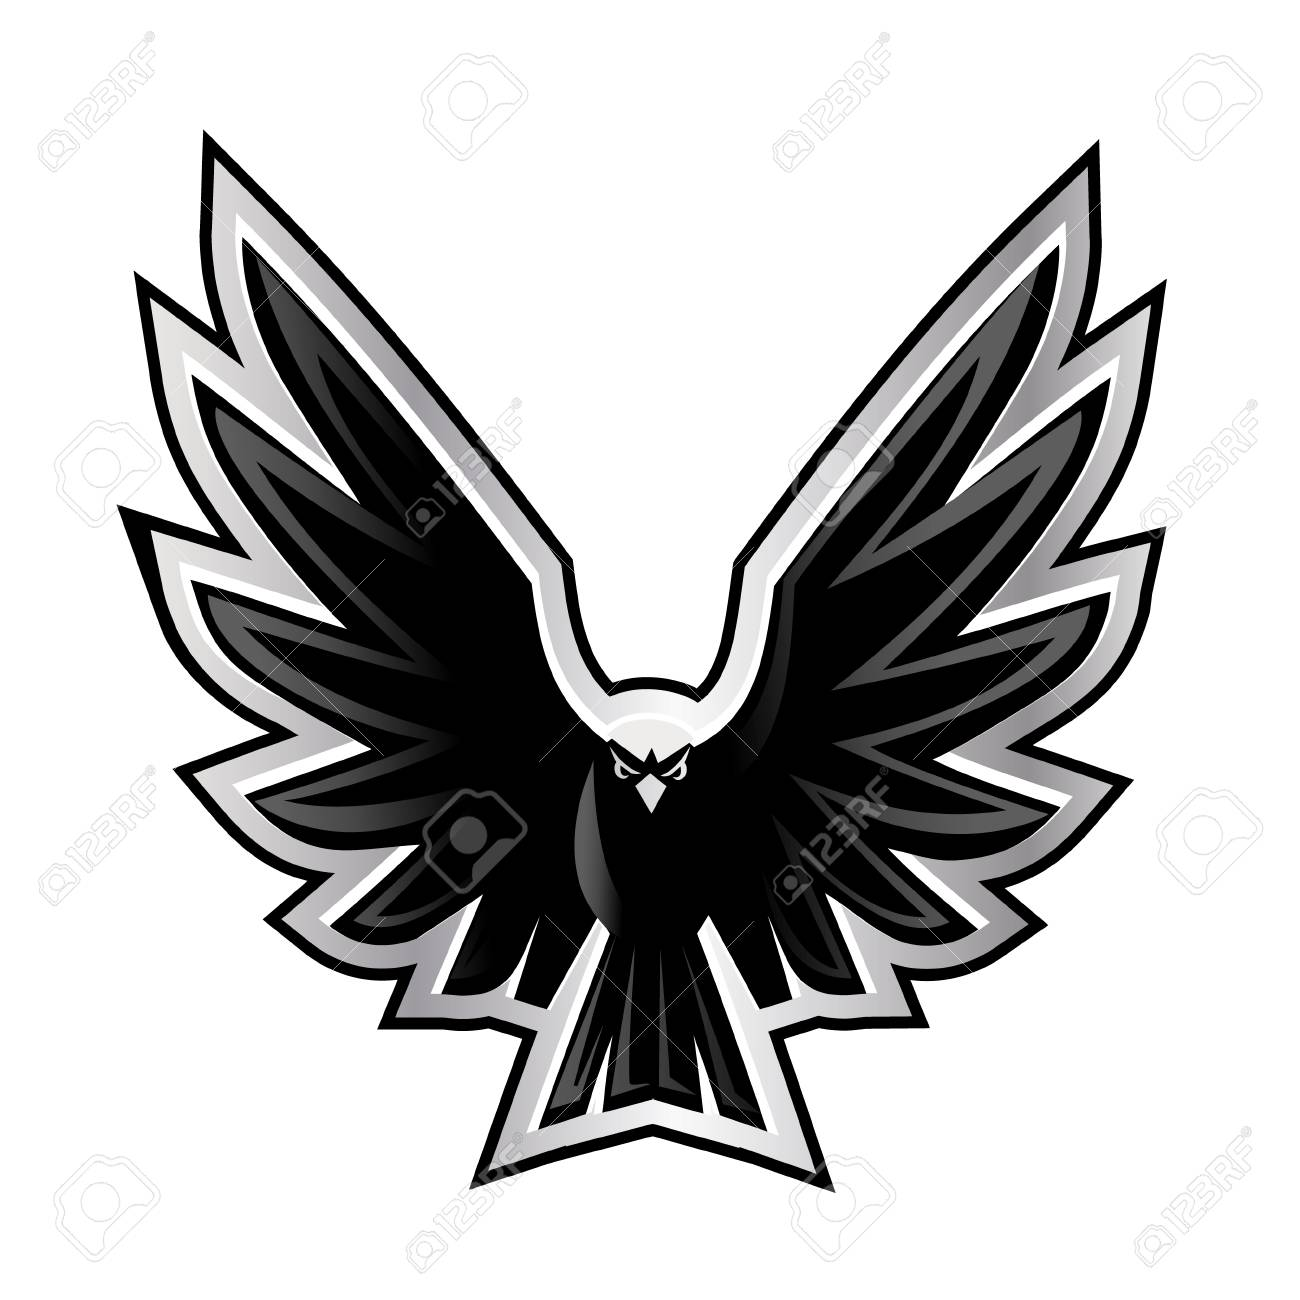 vector illustration of a eagle wings royalty free cliparts vectors and stock illustration image 117796540 123rf com